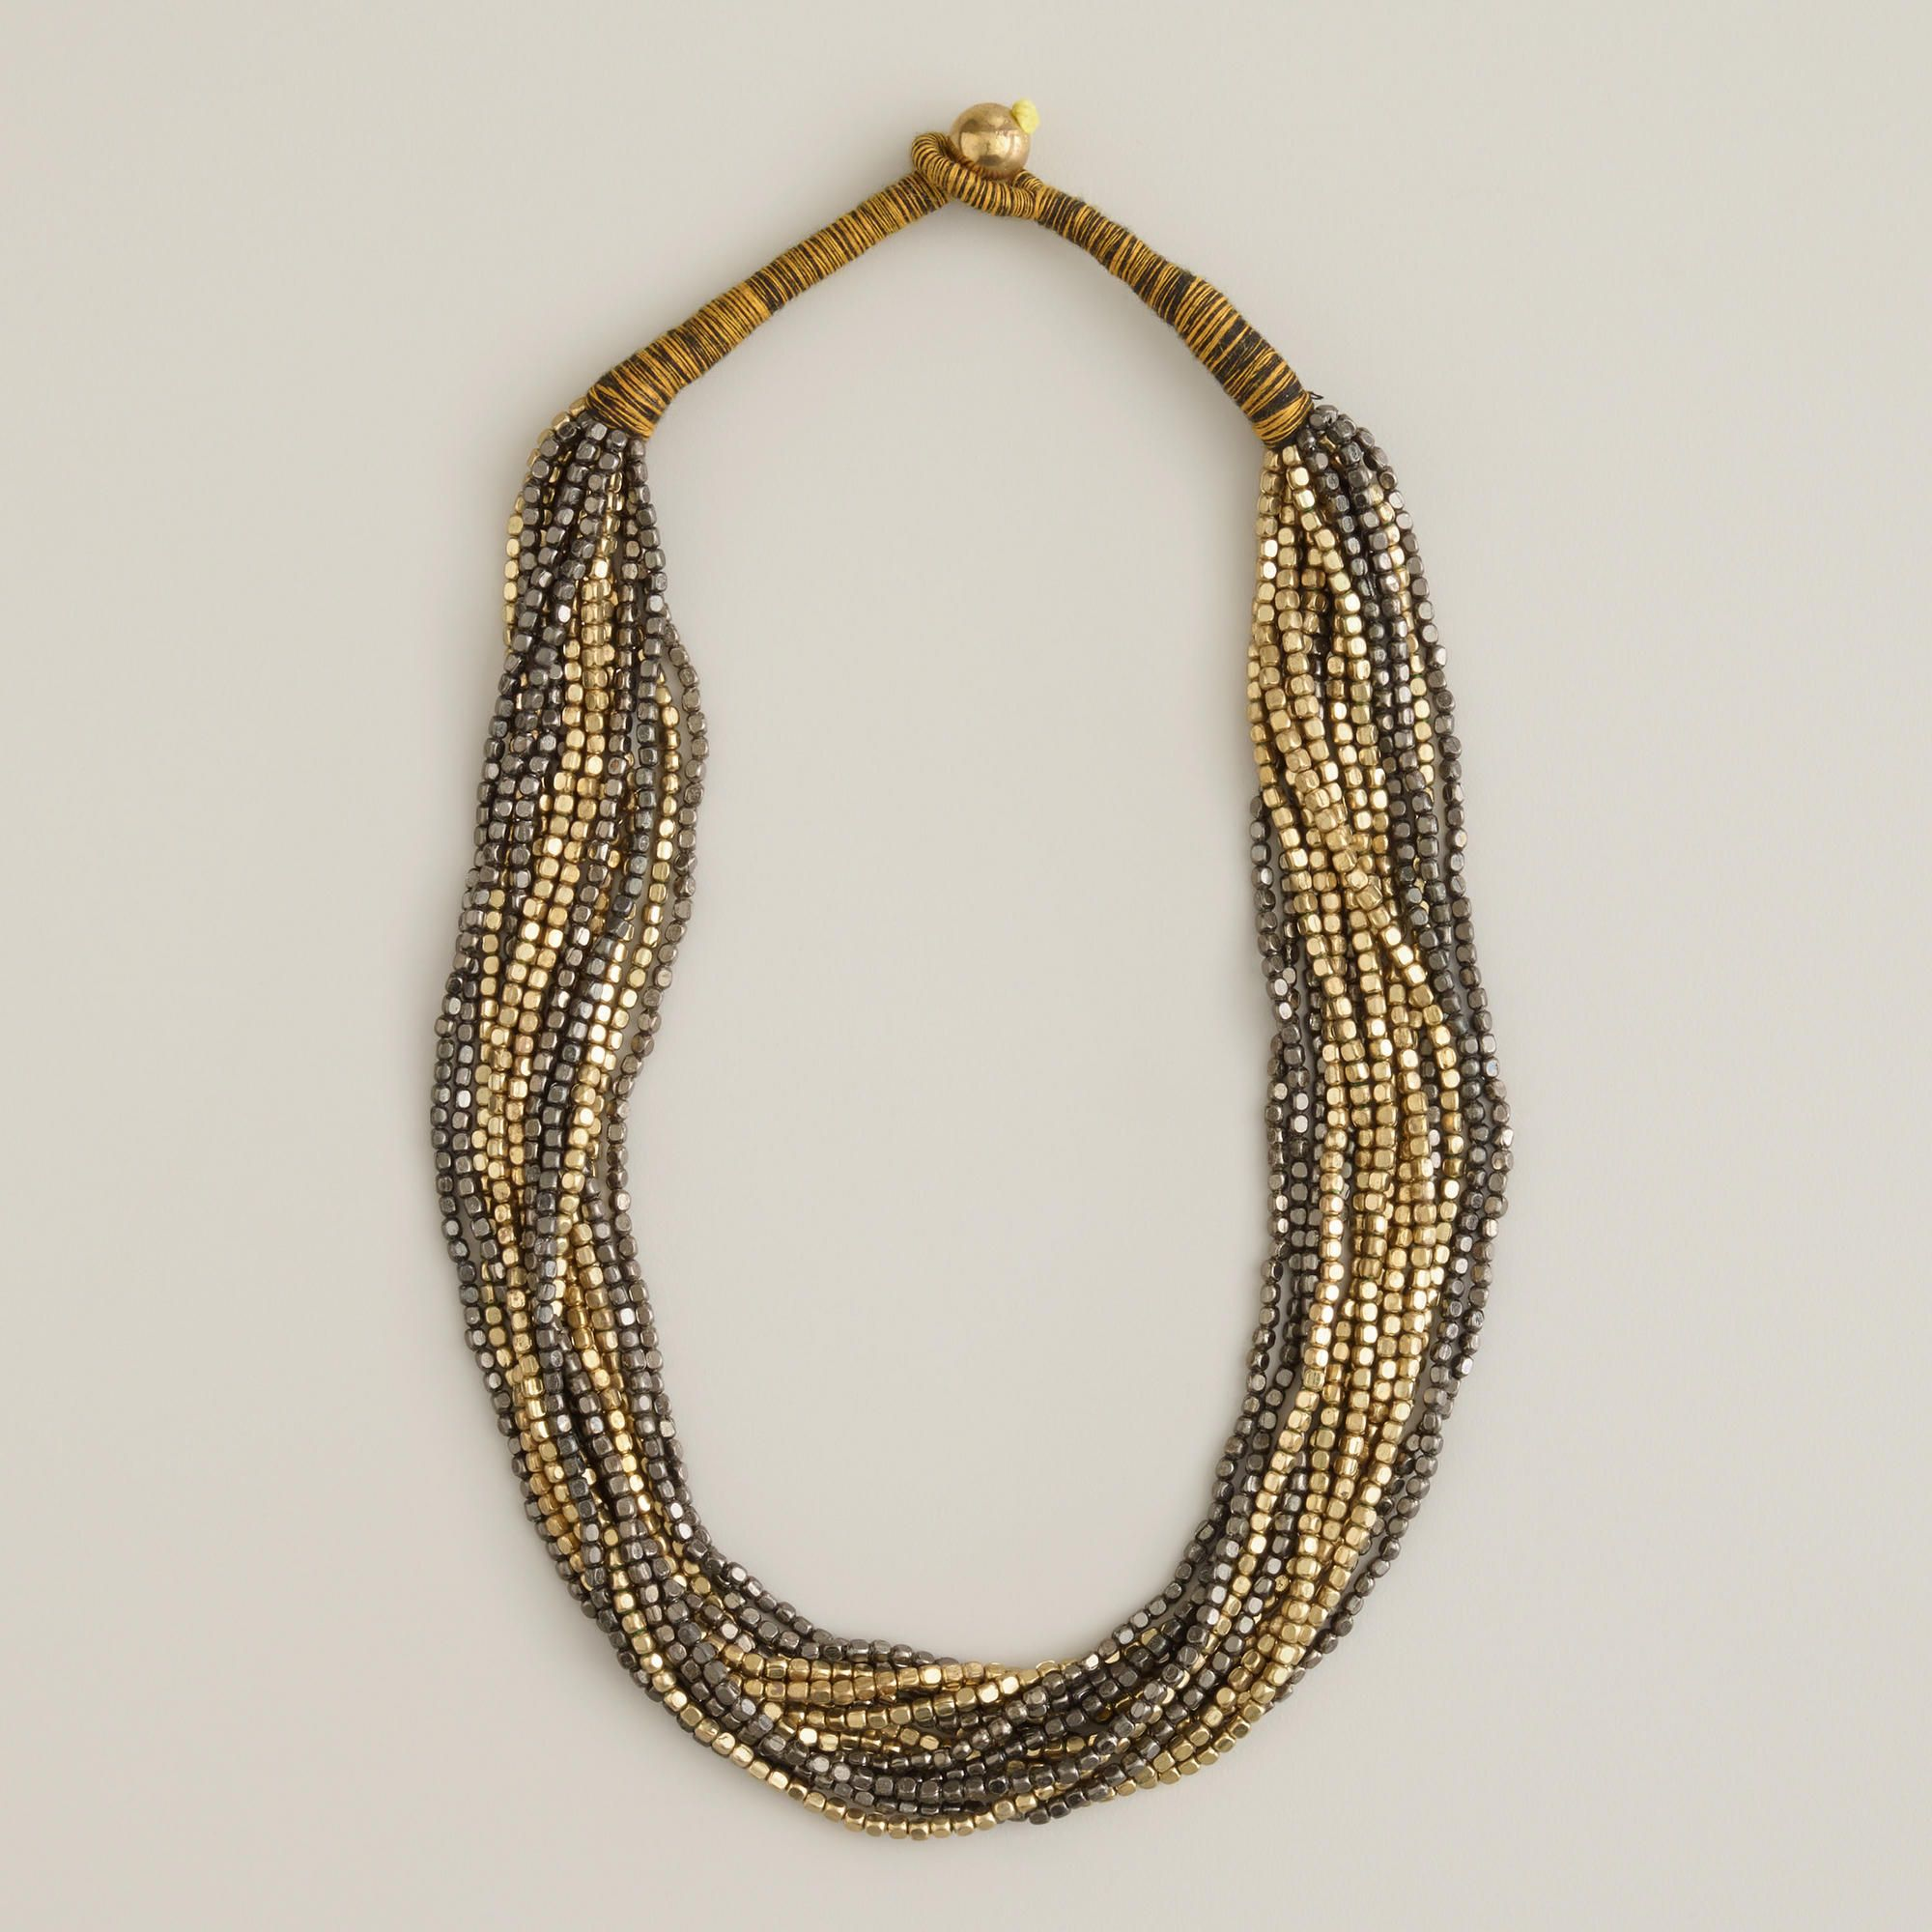 Gold and Gunmetal Indian Bead Necklace   World Market ...